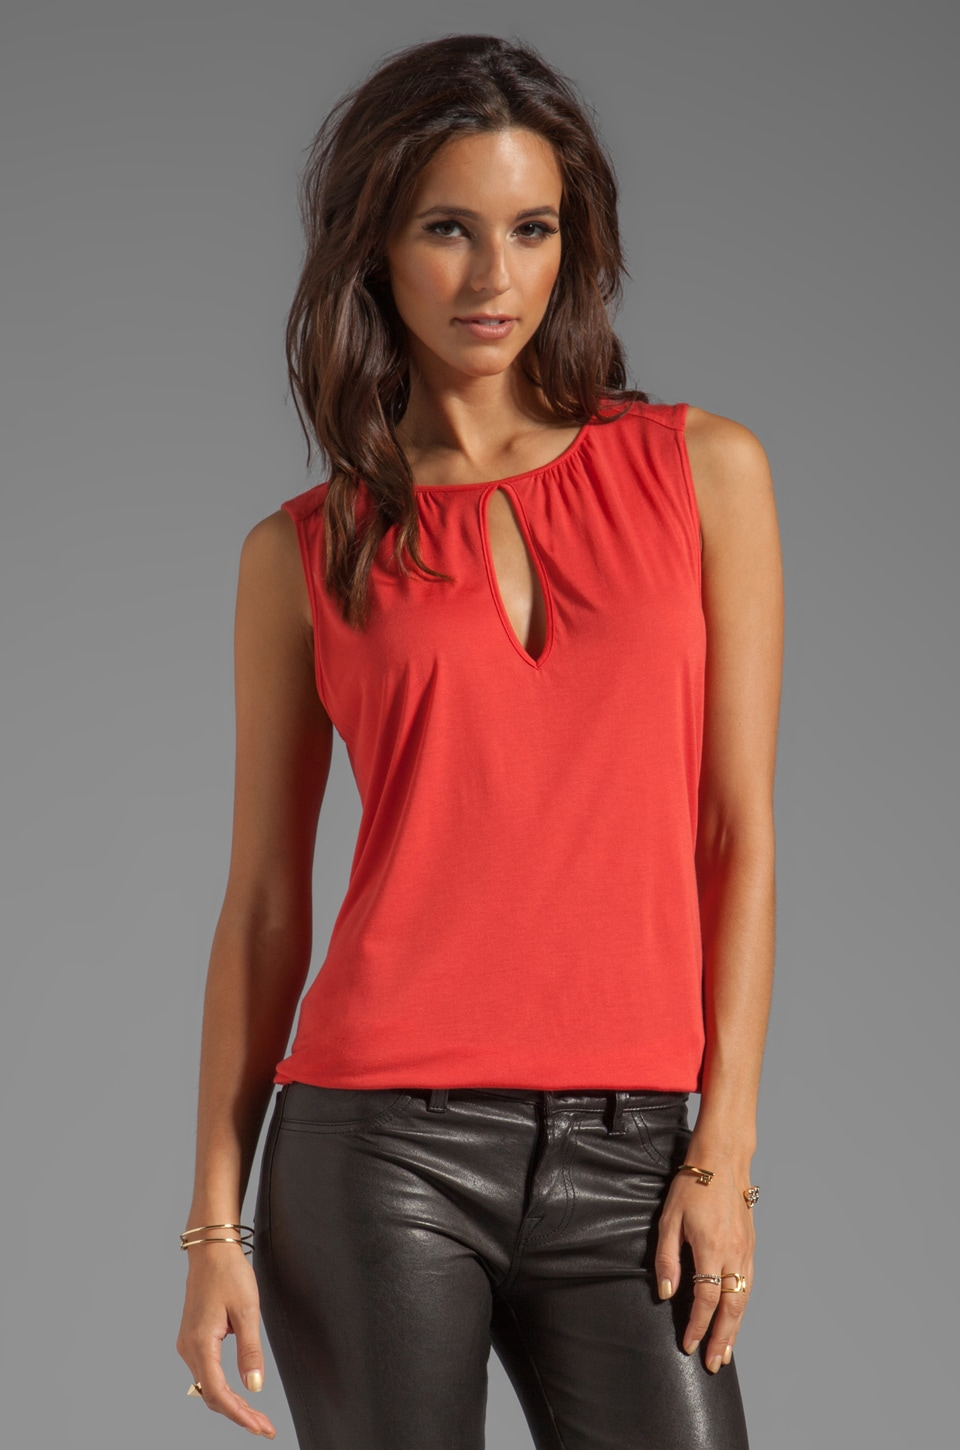 Lanston Keyhole Tunic Tank in Spice